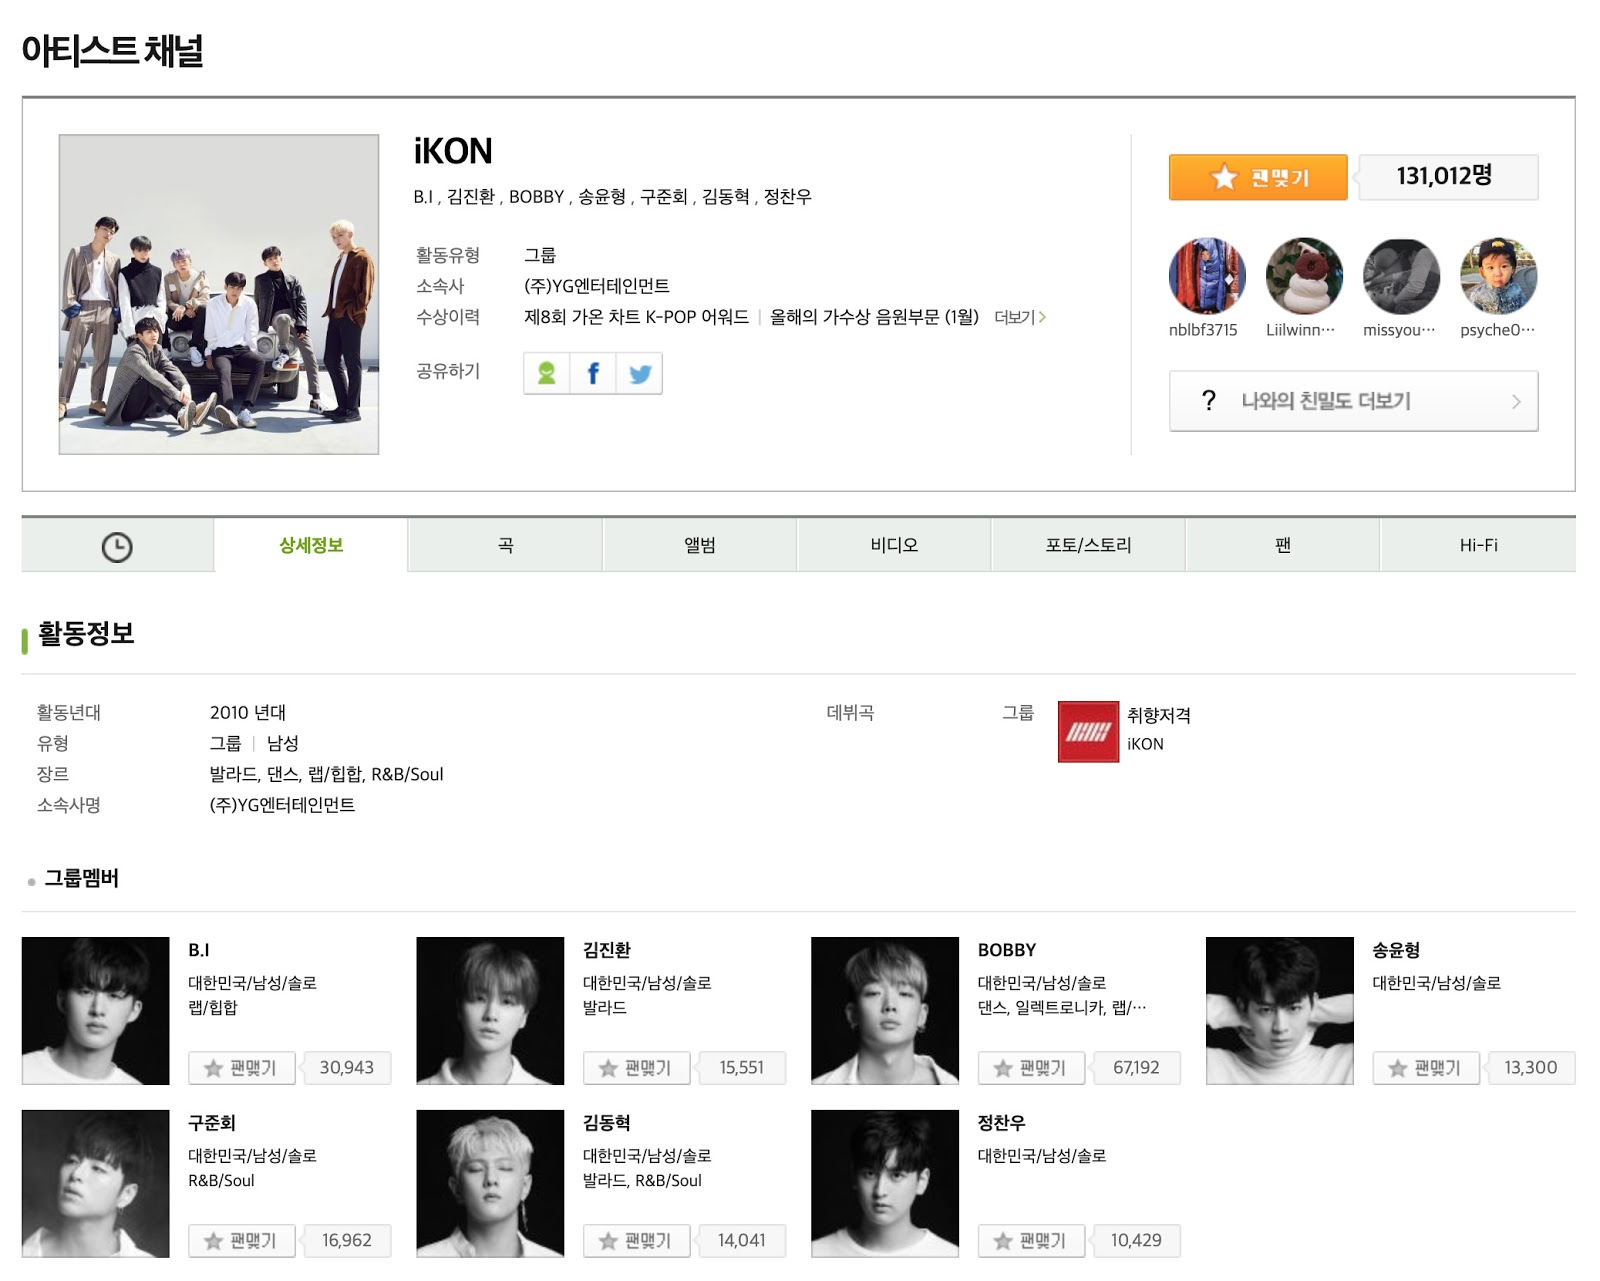 melon ikon bi profile